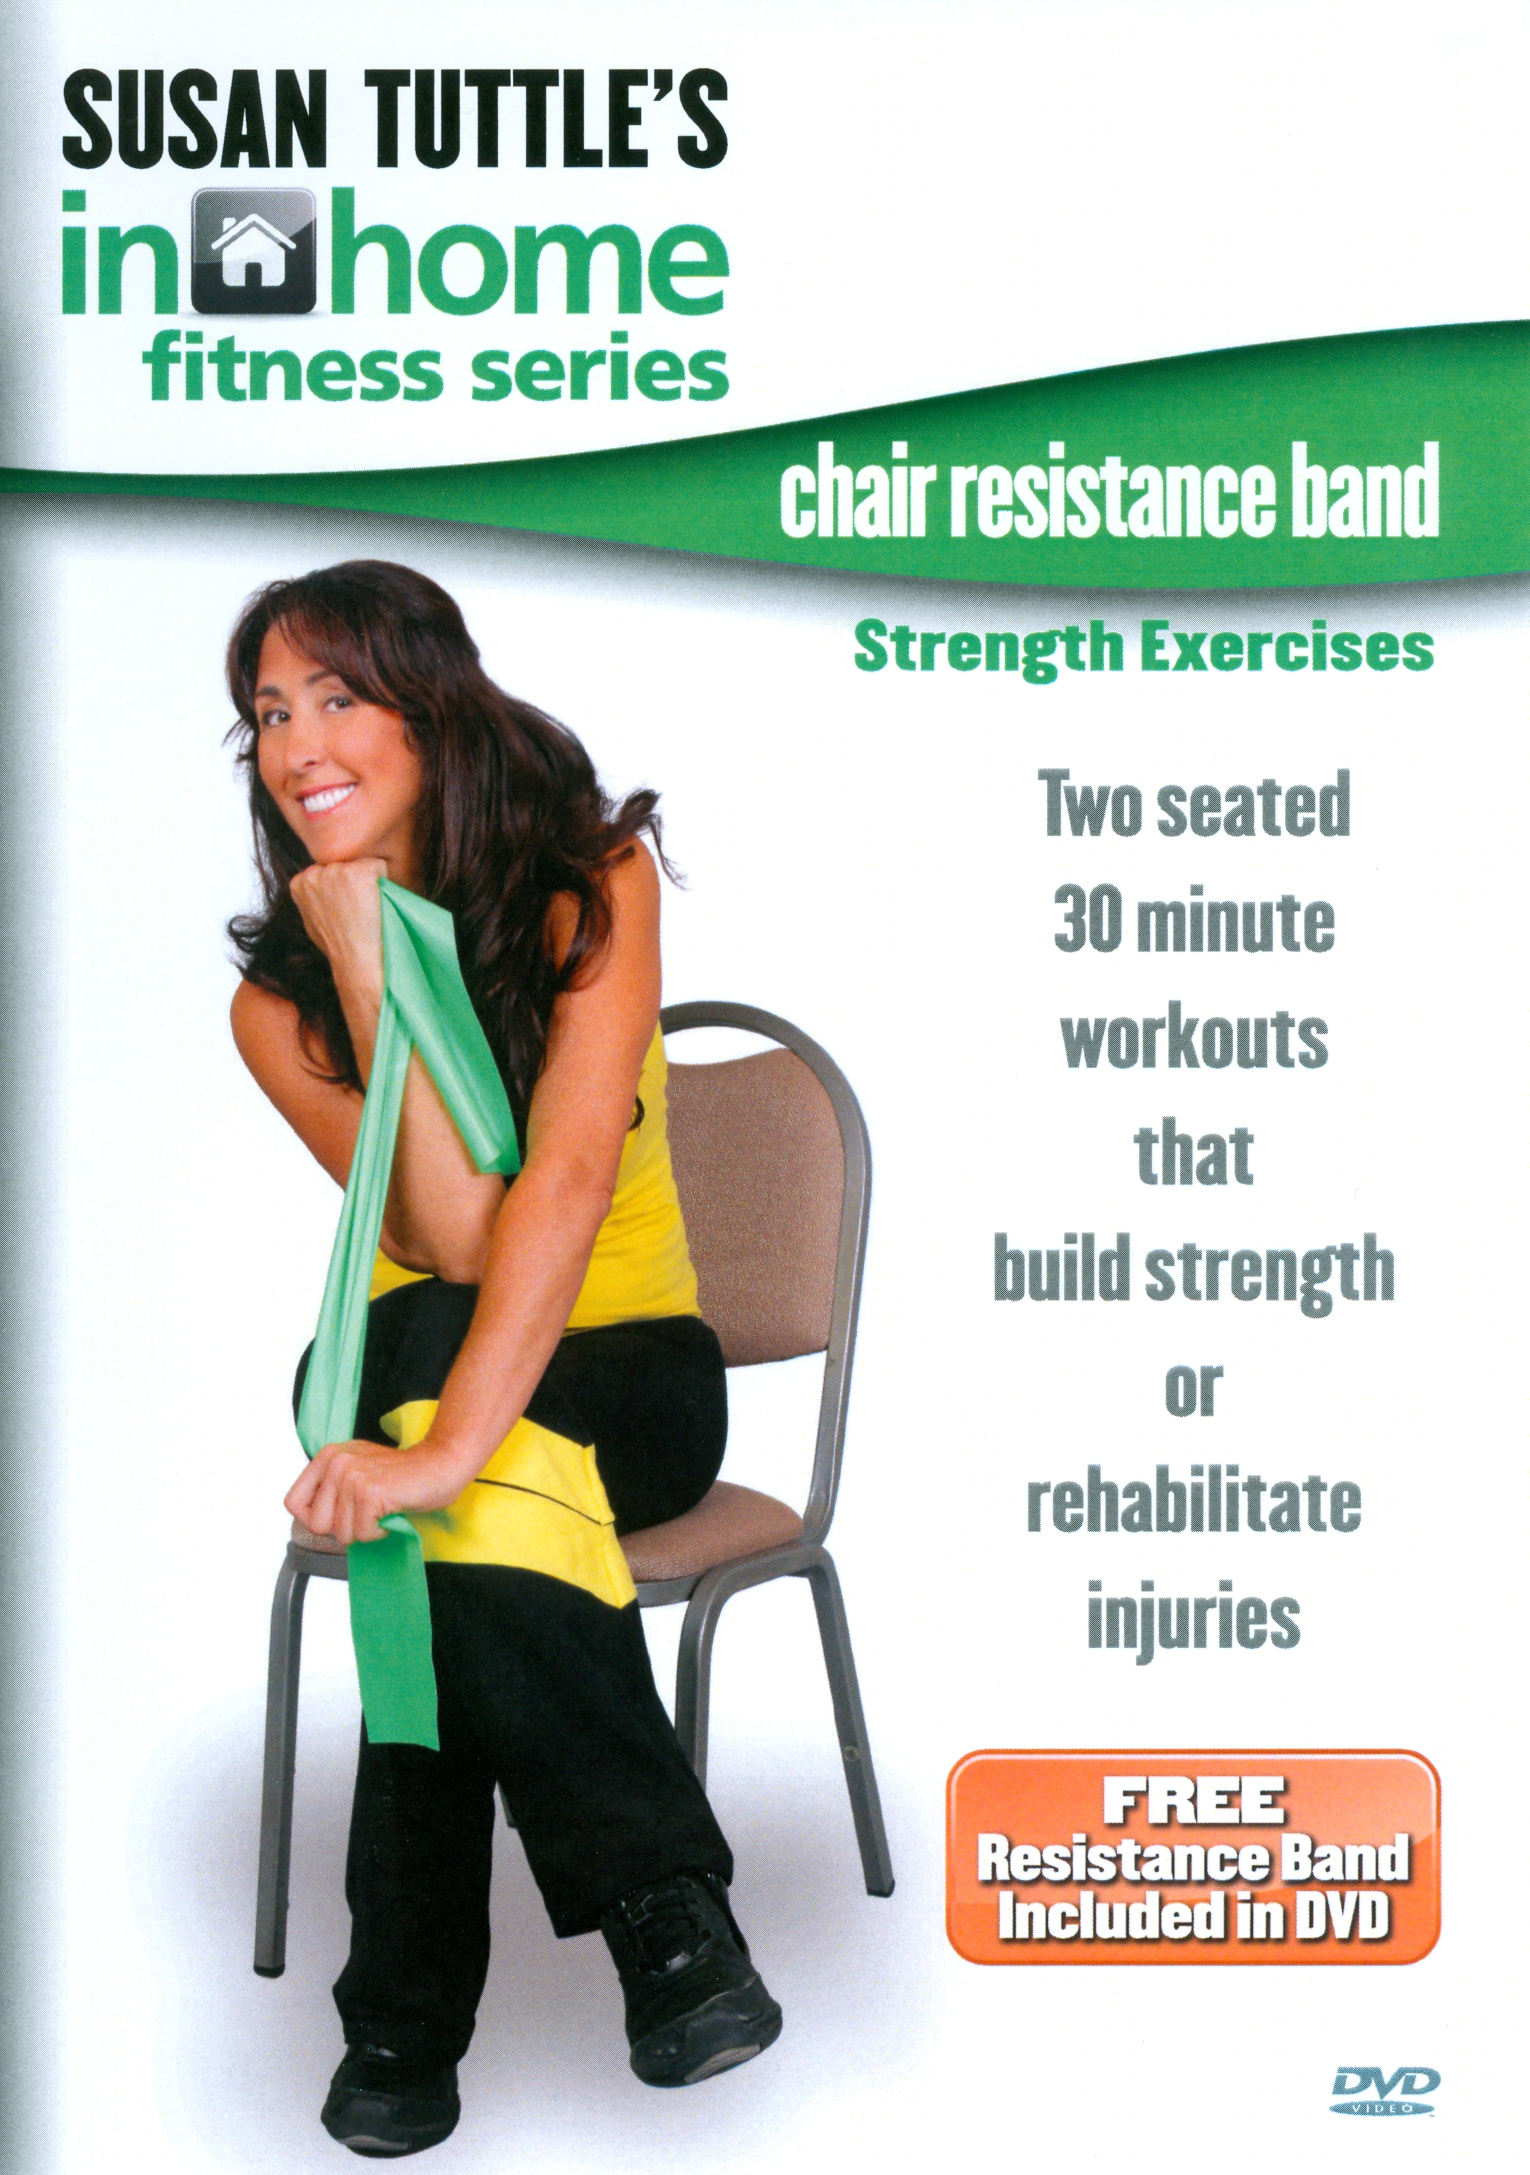 resistance chair exercise system reviews hub around susan tuttle 39s in home fitness band